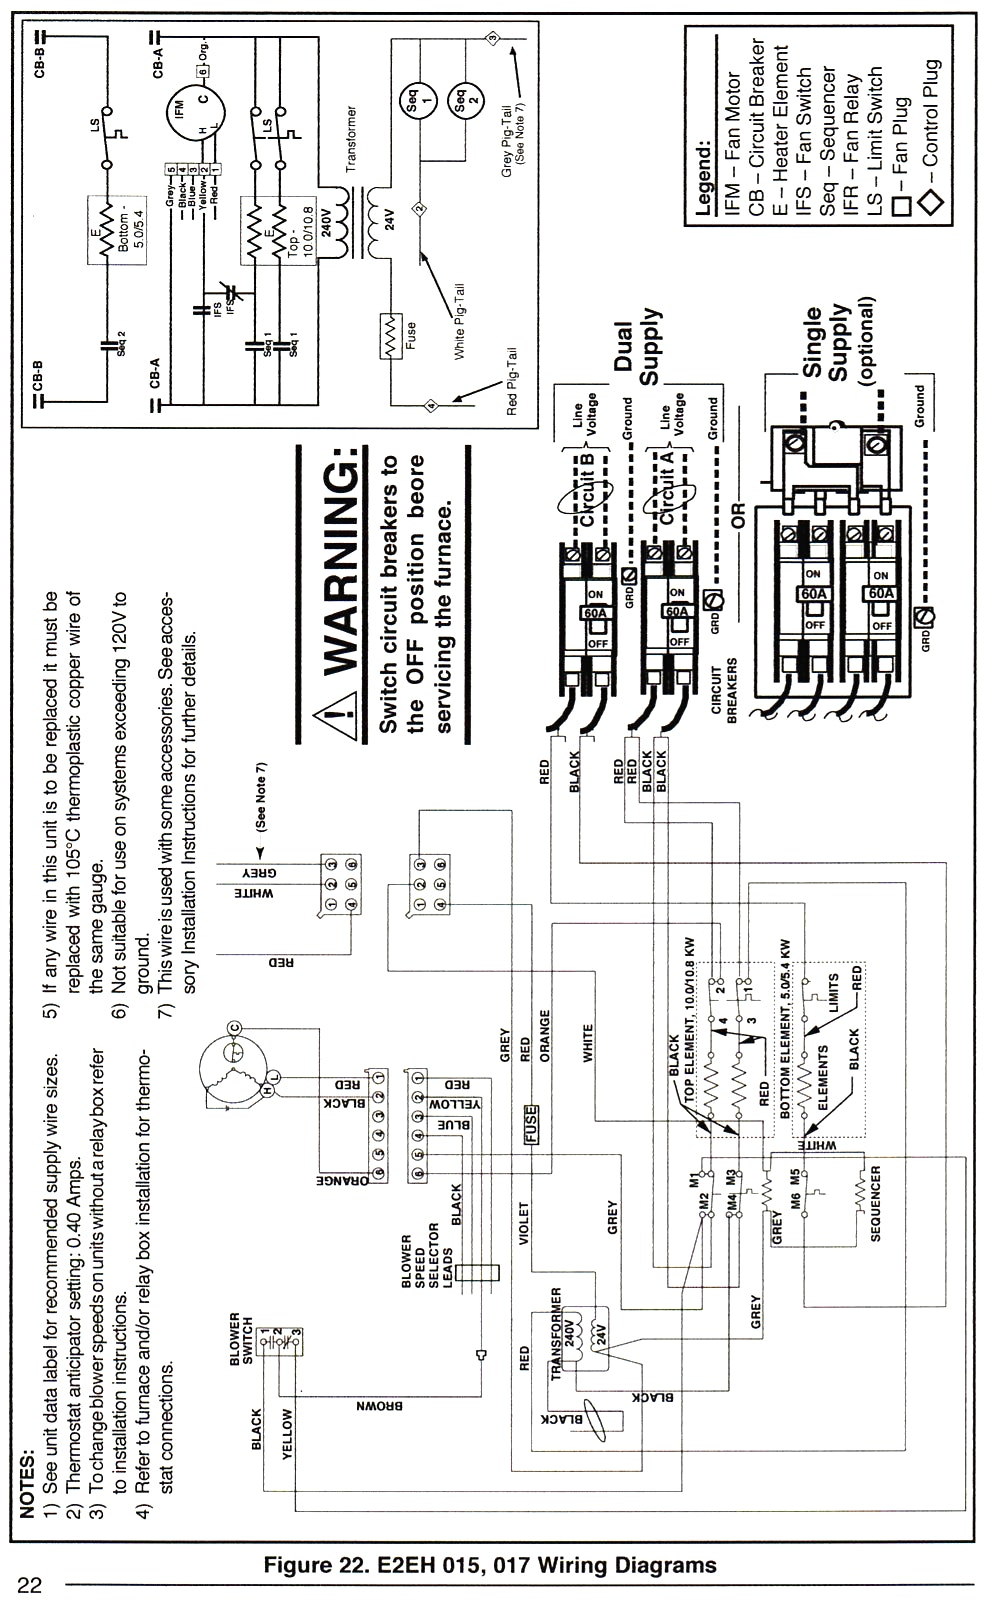 wiring schematic for intertherm furnace wiring diagram pagewiring diagram for intertherm furnace wiring diagram sort wiring schematic for intertherm furnace